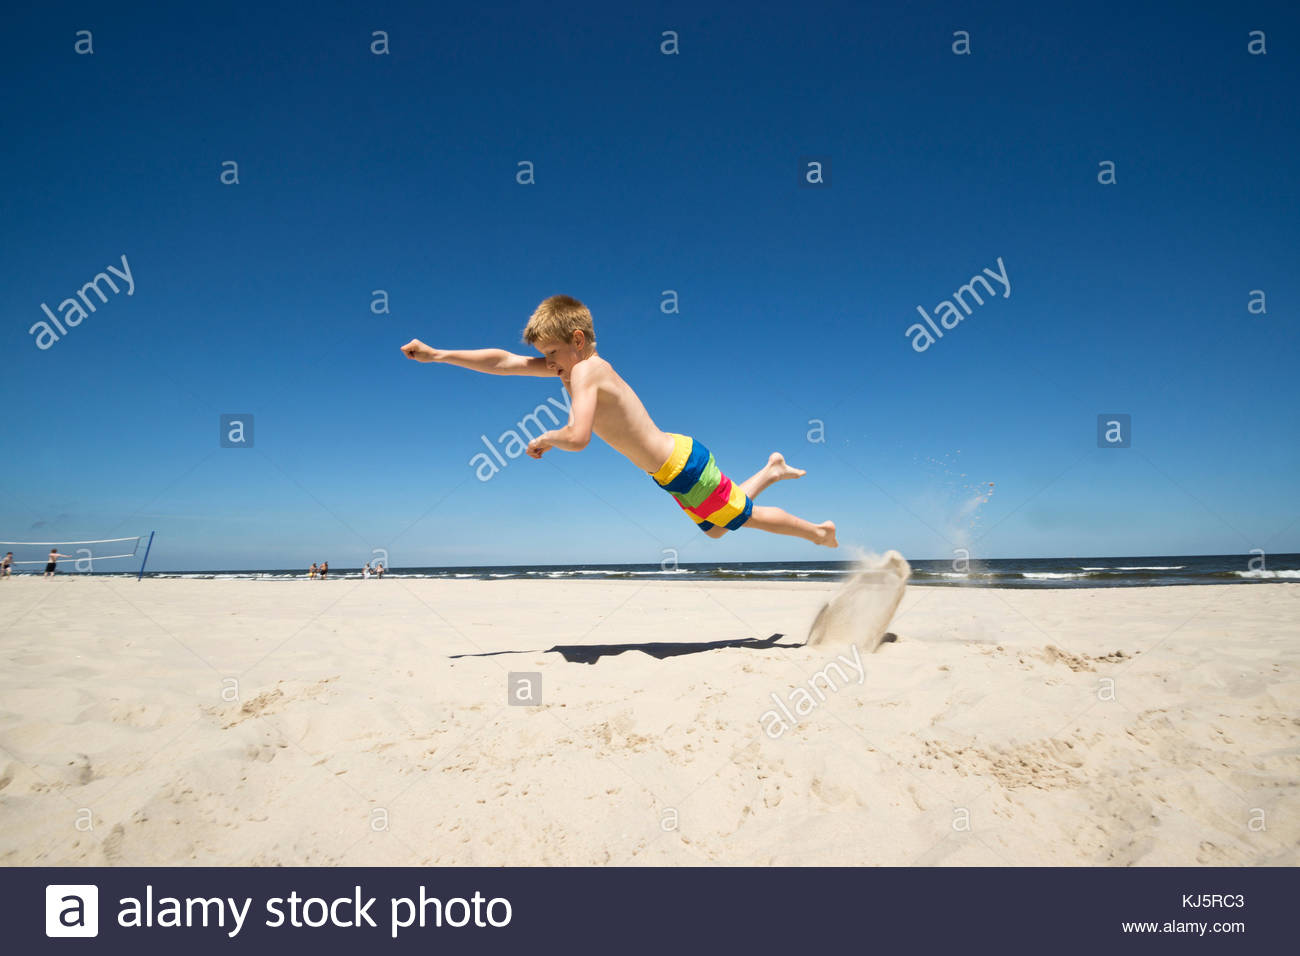 Young kid jumping on the sand - Stock Image